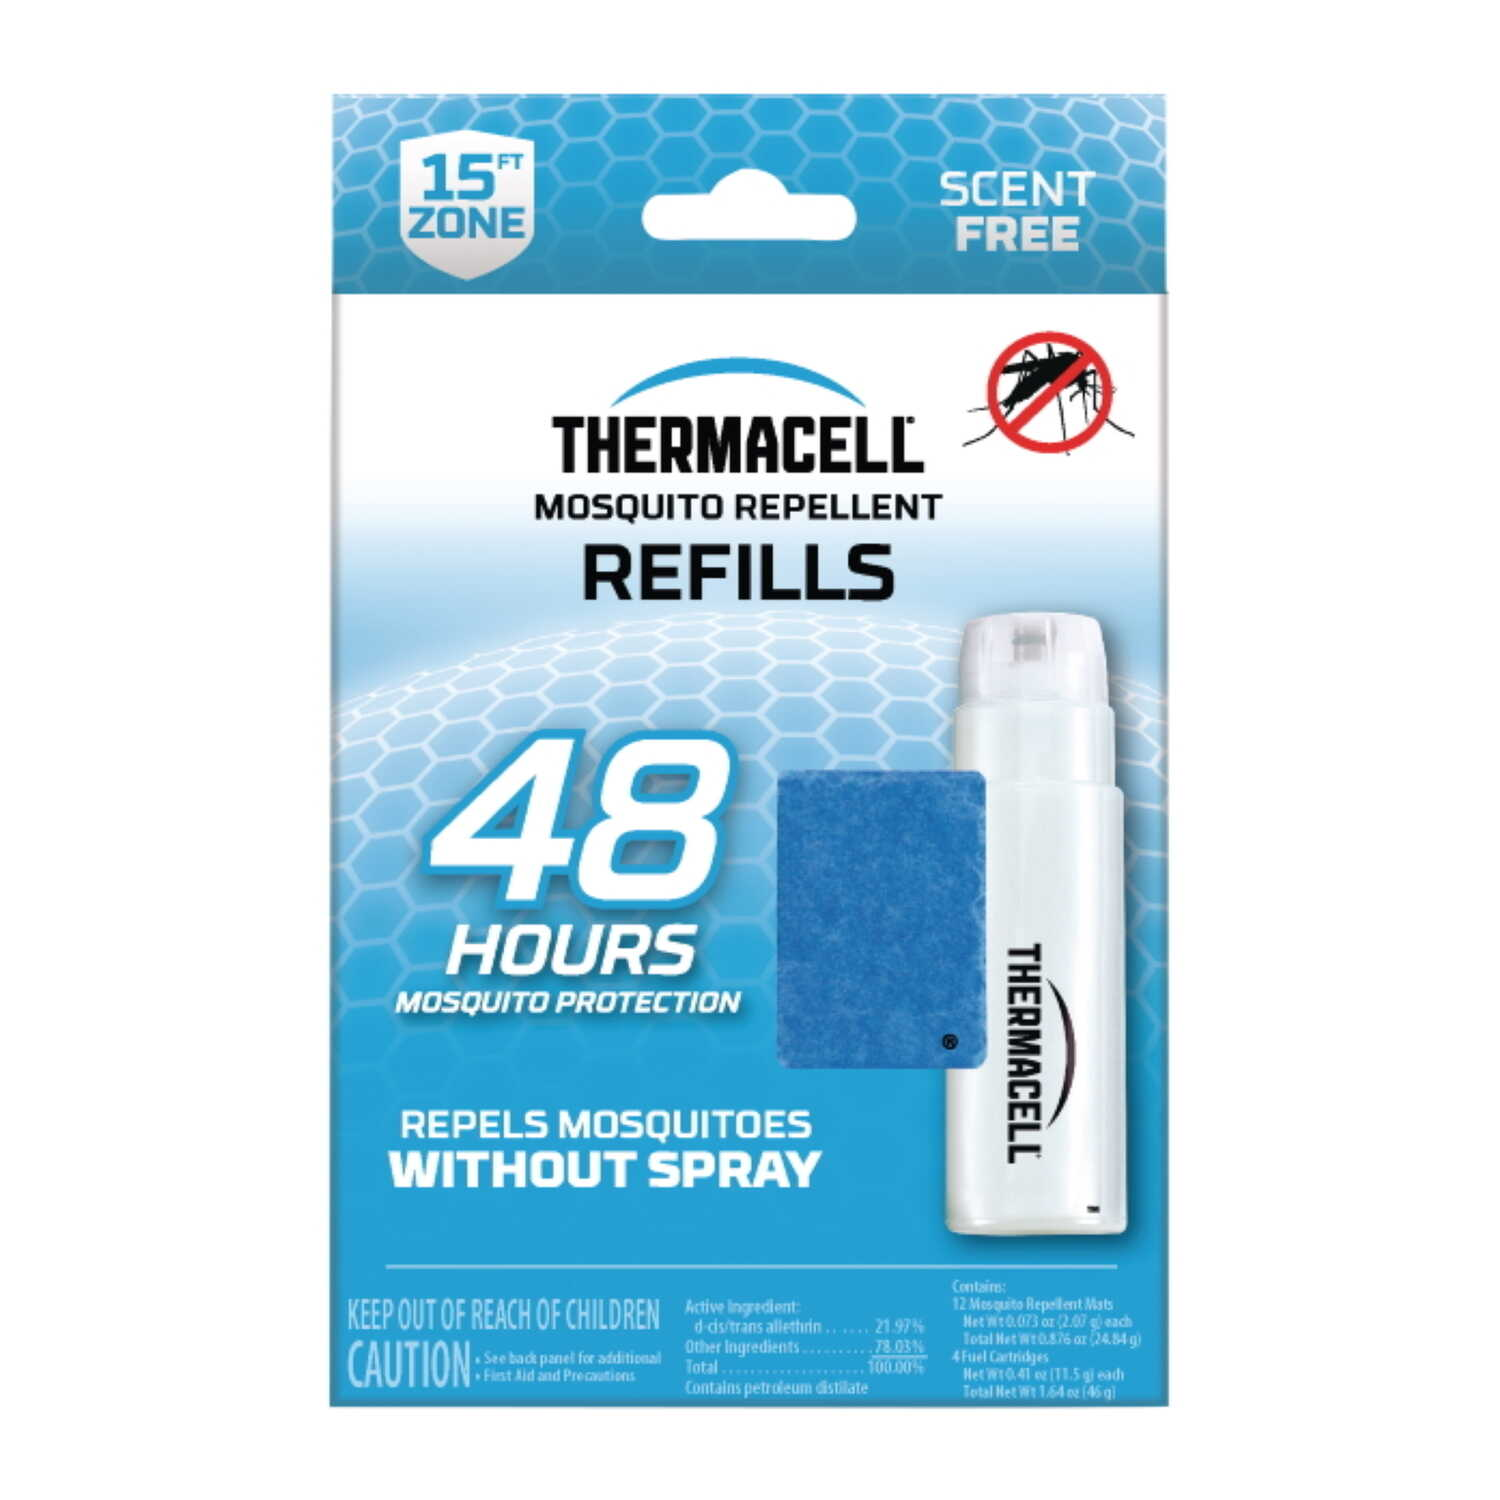 Thermacell  Insect Repellent Refill  Cartridge  For Mosquitoes 0.4 oz.